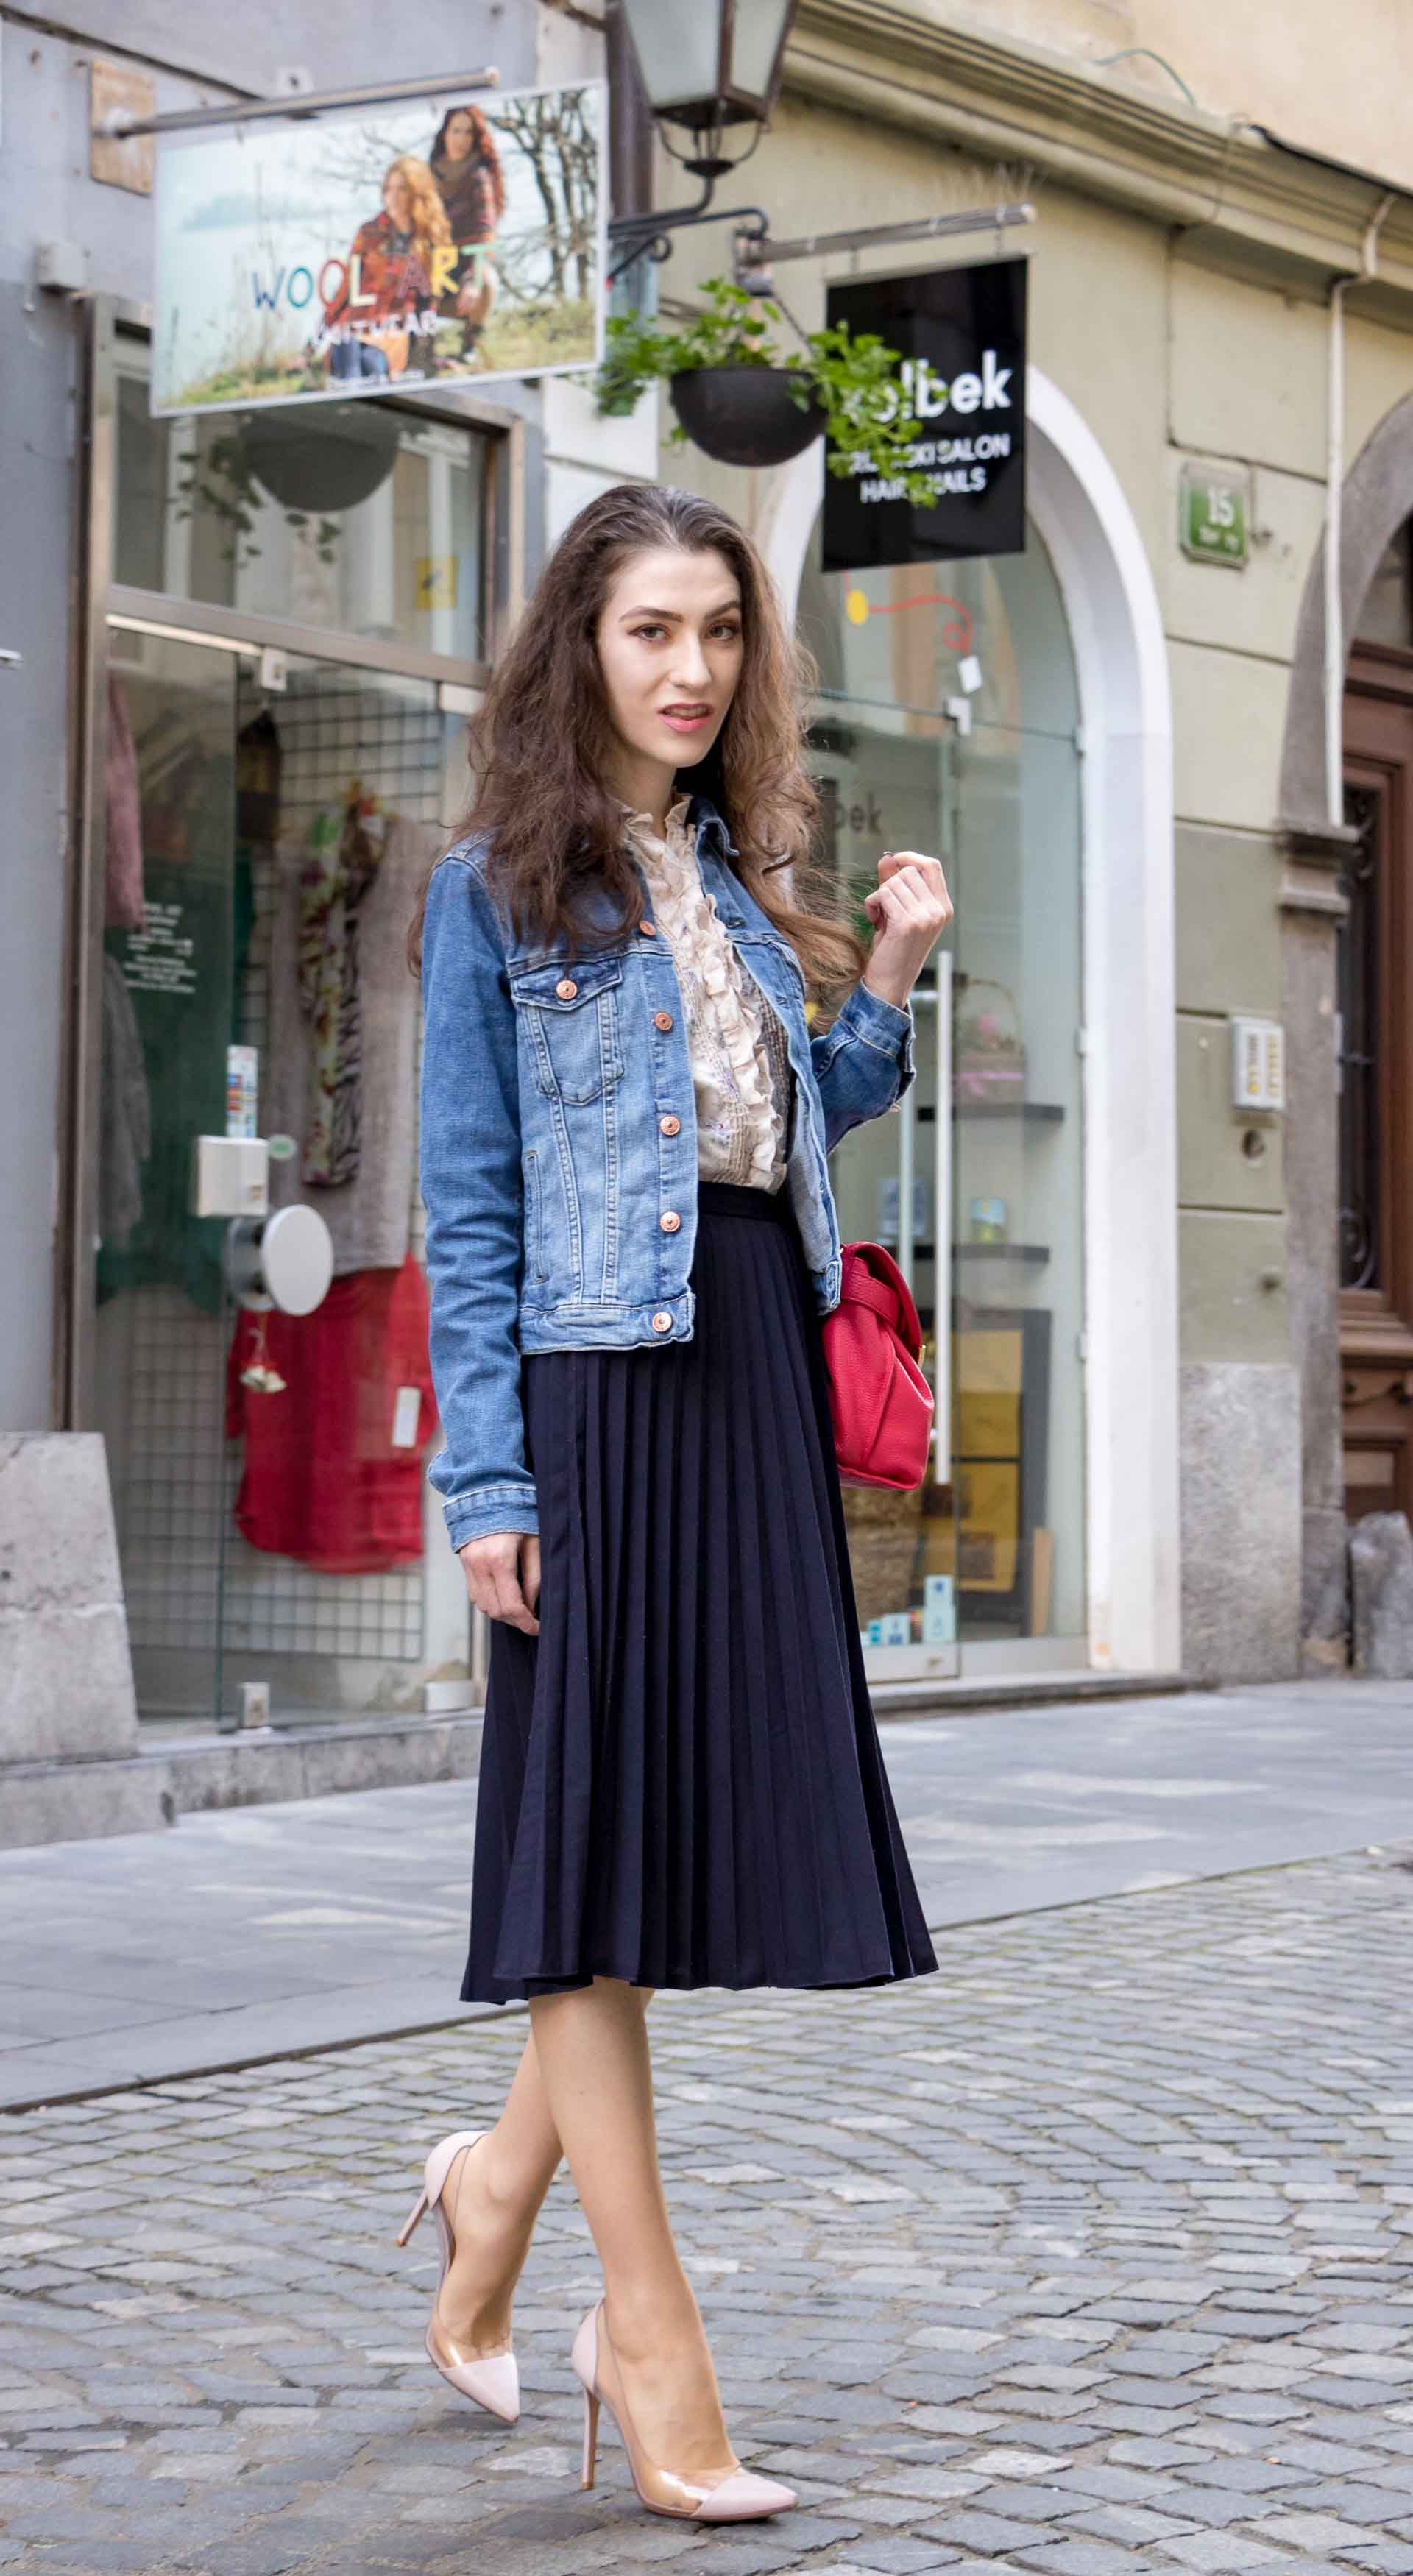 bc2aff17af Fashion Blogger Veronika Lipar of Brunette from Wall Street sharing what to  wear for brunch on cold summer days #fashion #blogpost #chic #casual ...